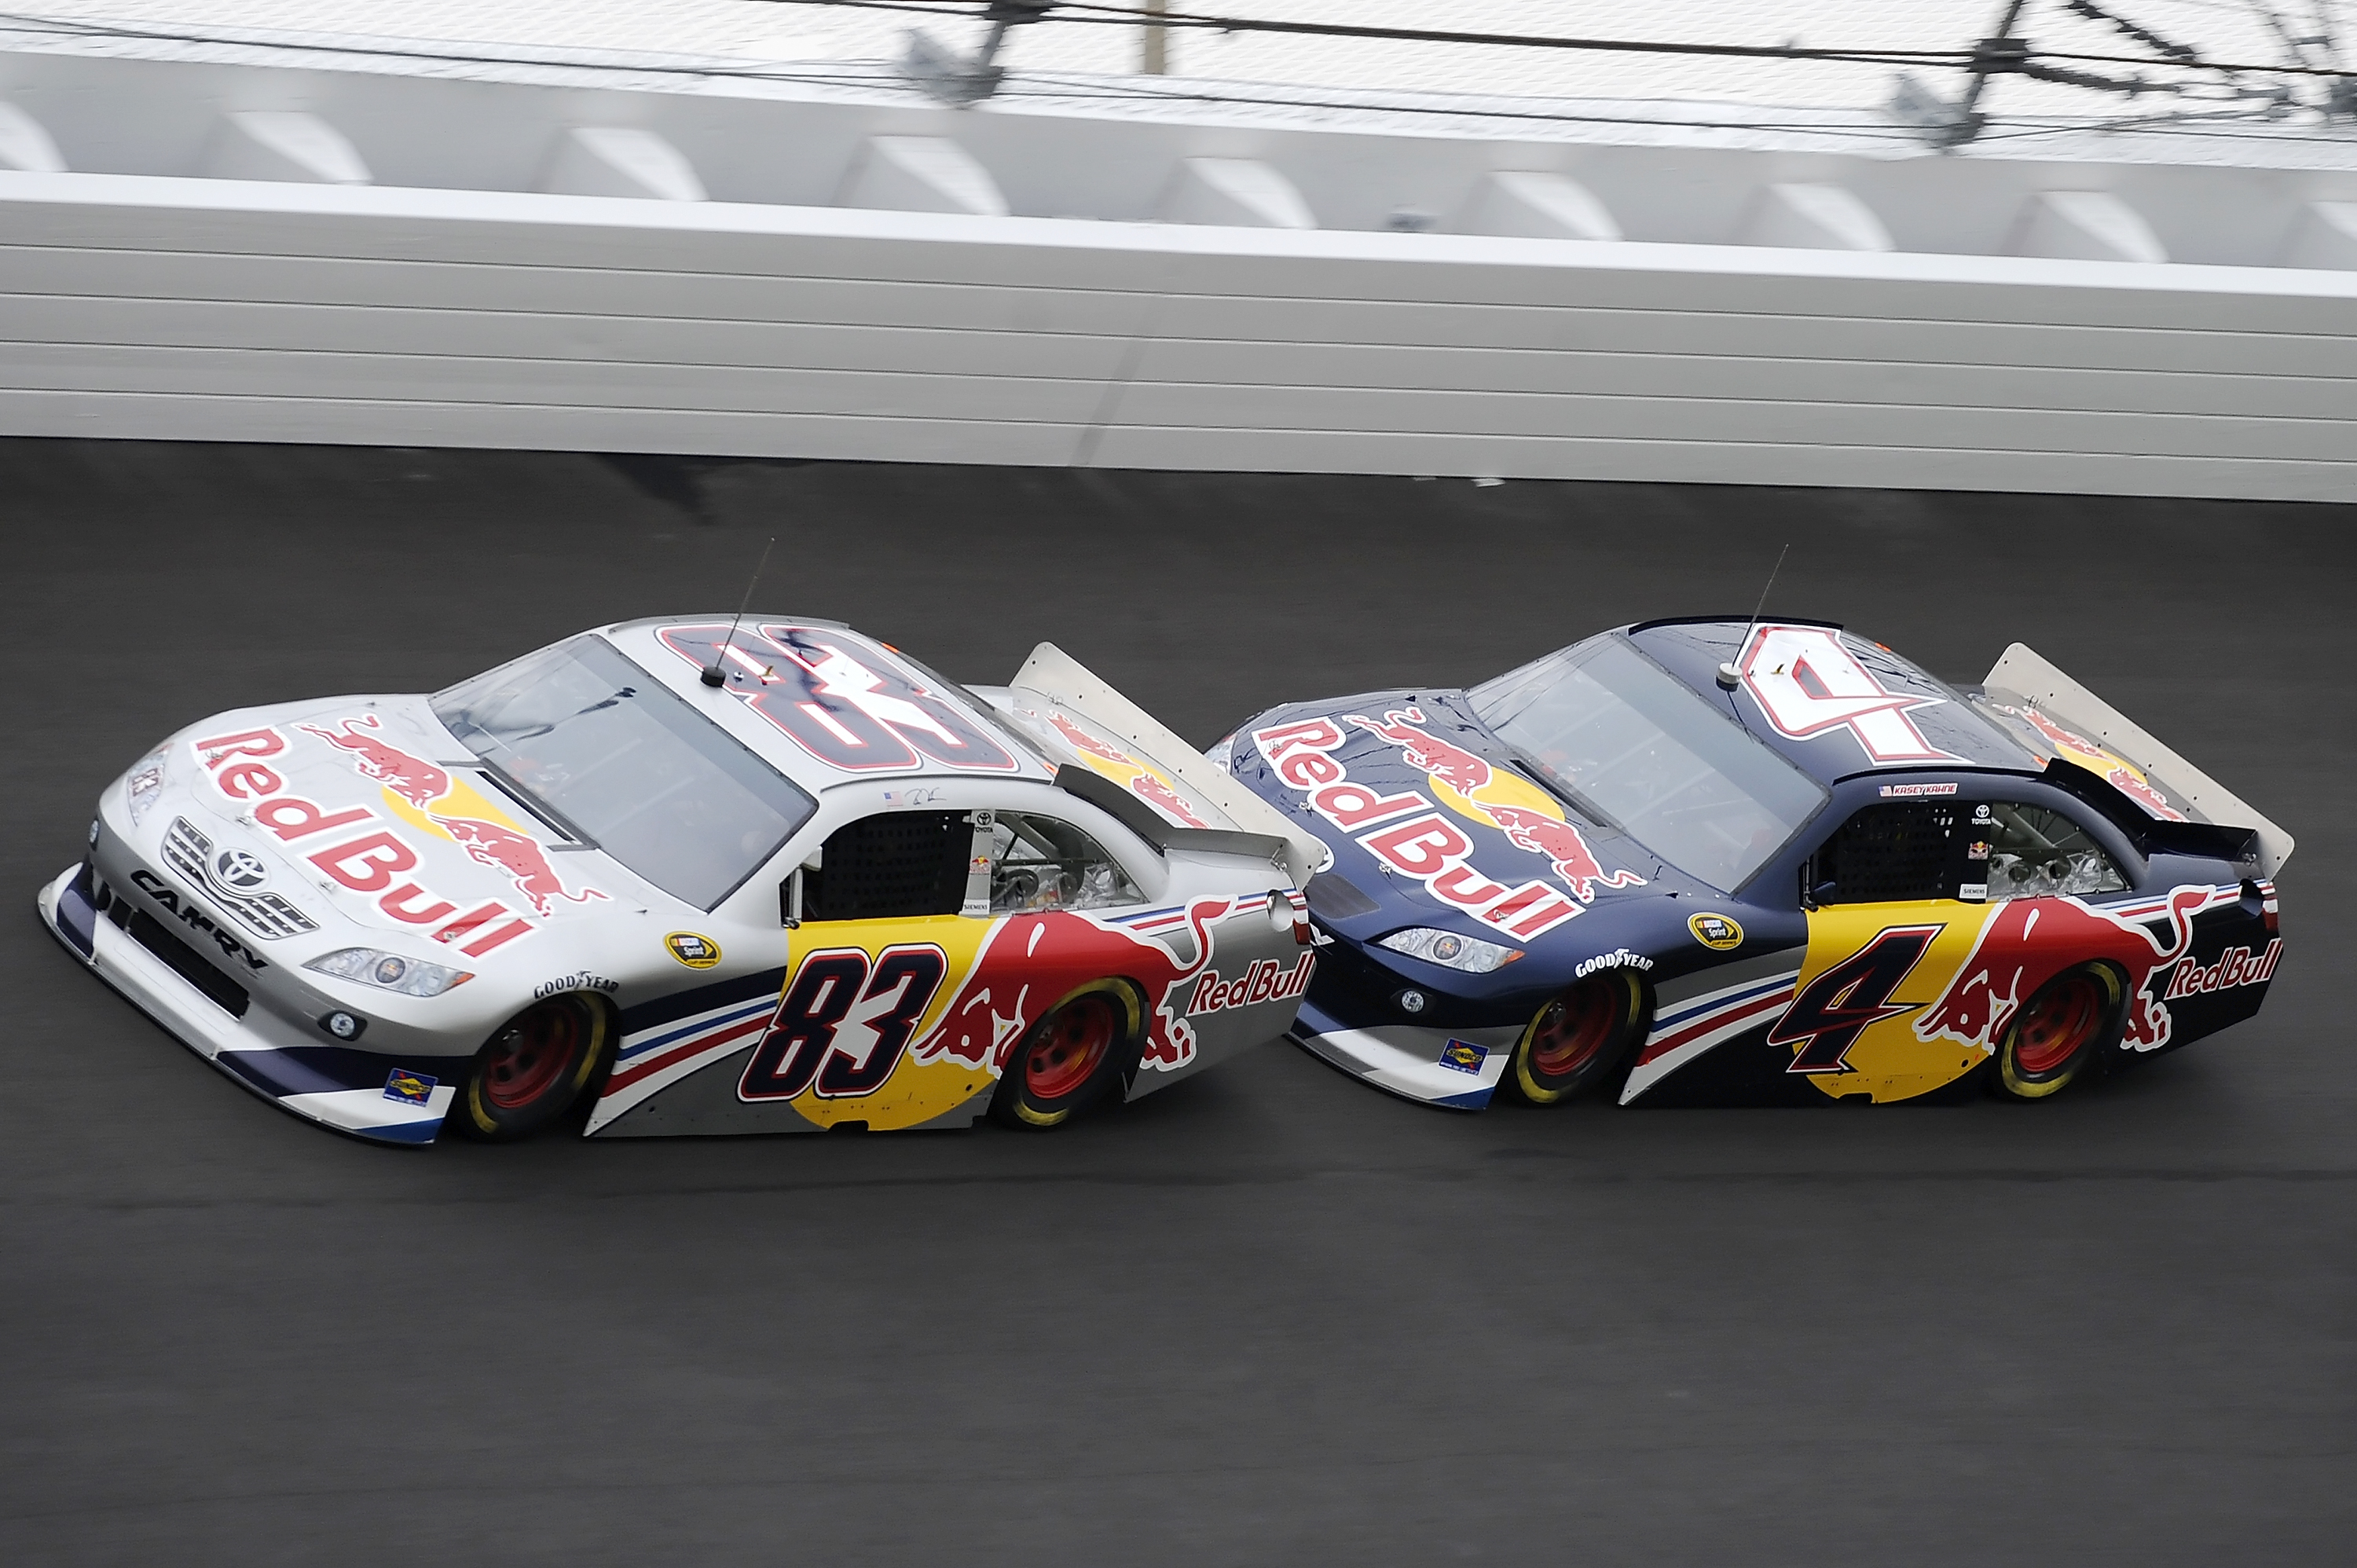 Kasey Kahne looked solid in the Red Bull No.4 during the Daytona test on the new asphalt in January.